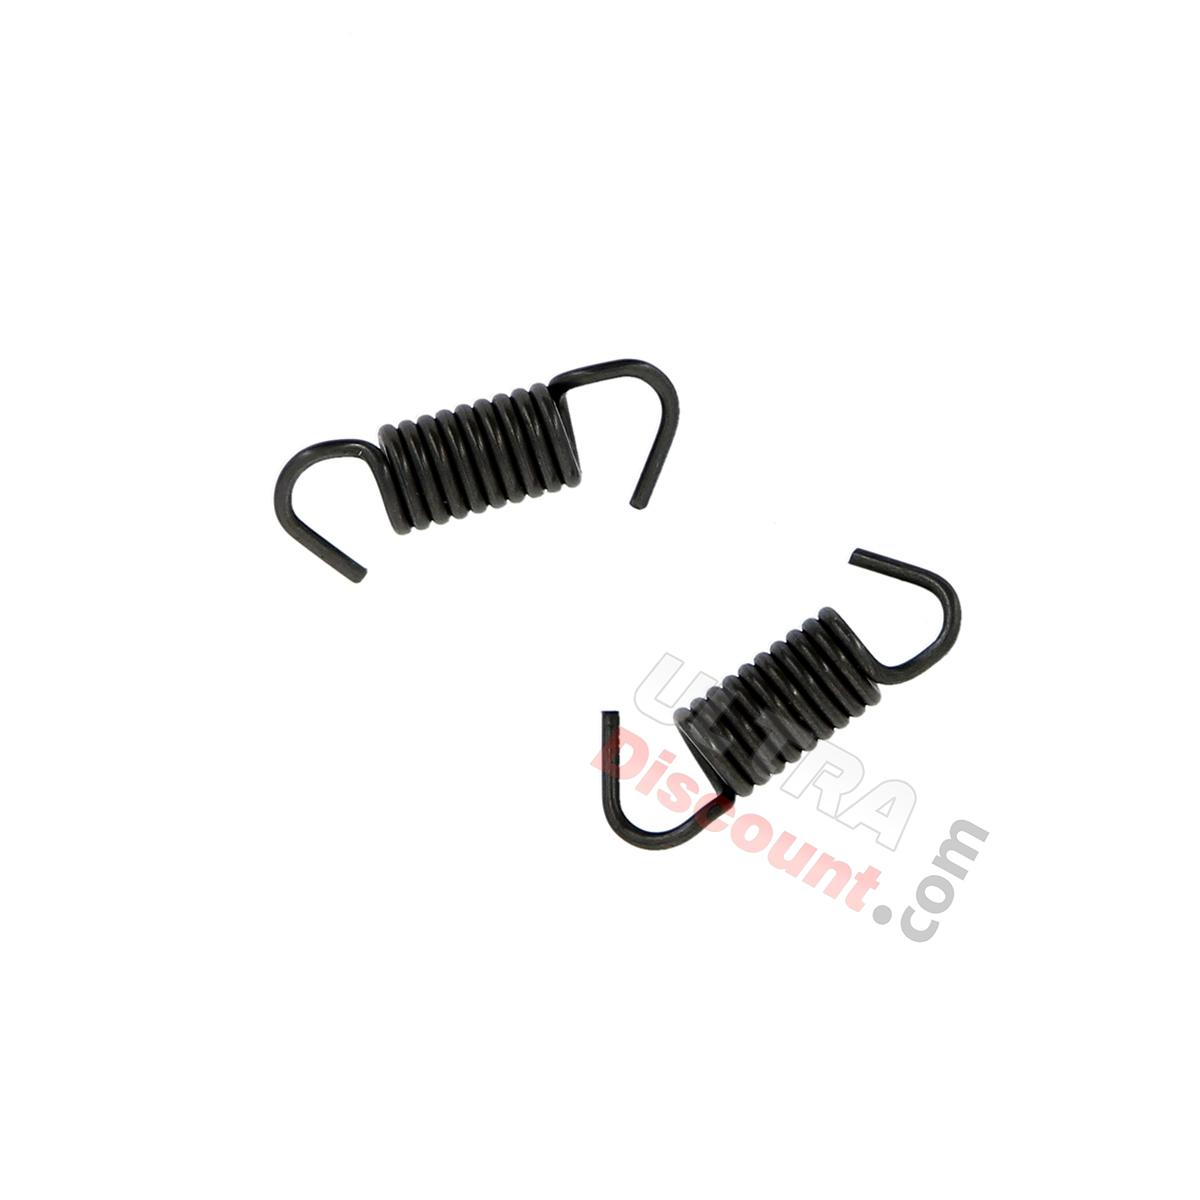 Set Of 2 Brake Shoes Springs For Scooter Baotian Bt49qt 9